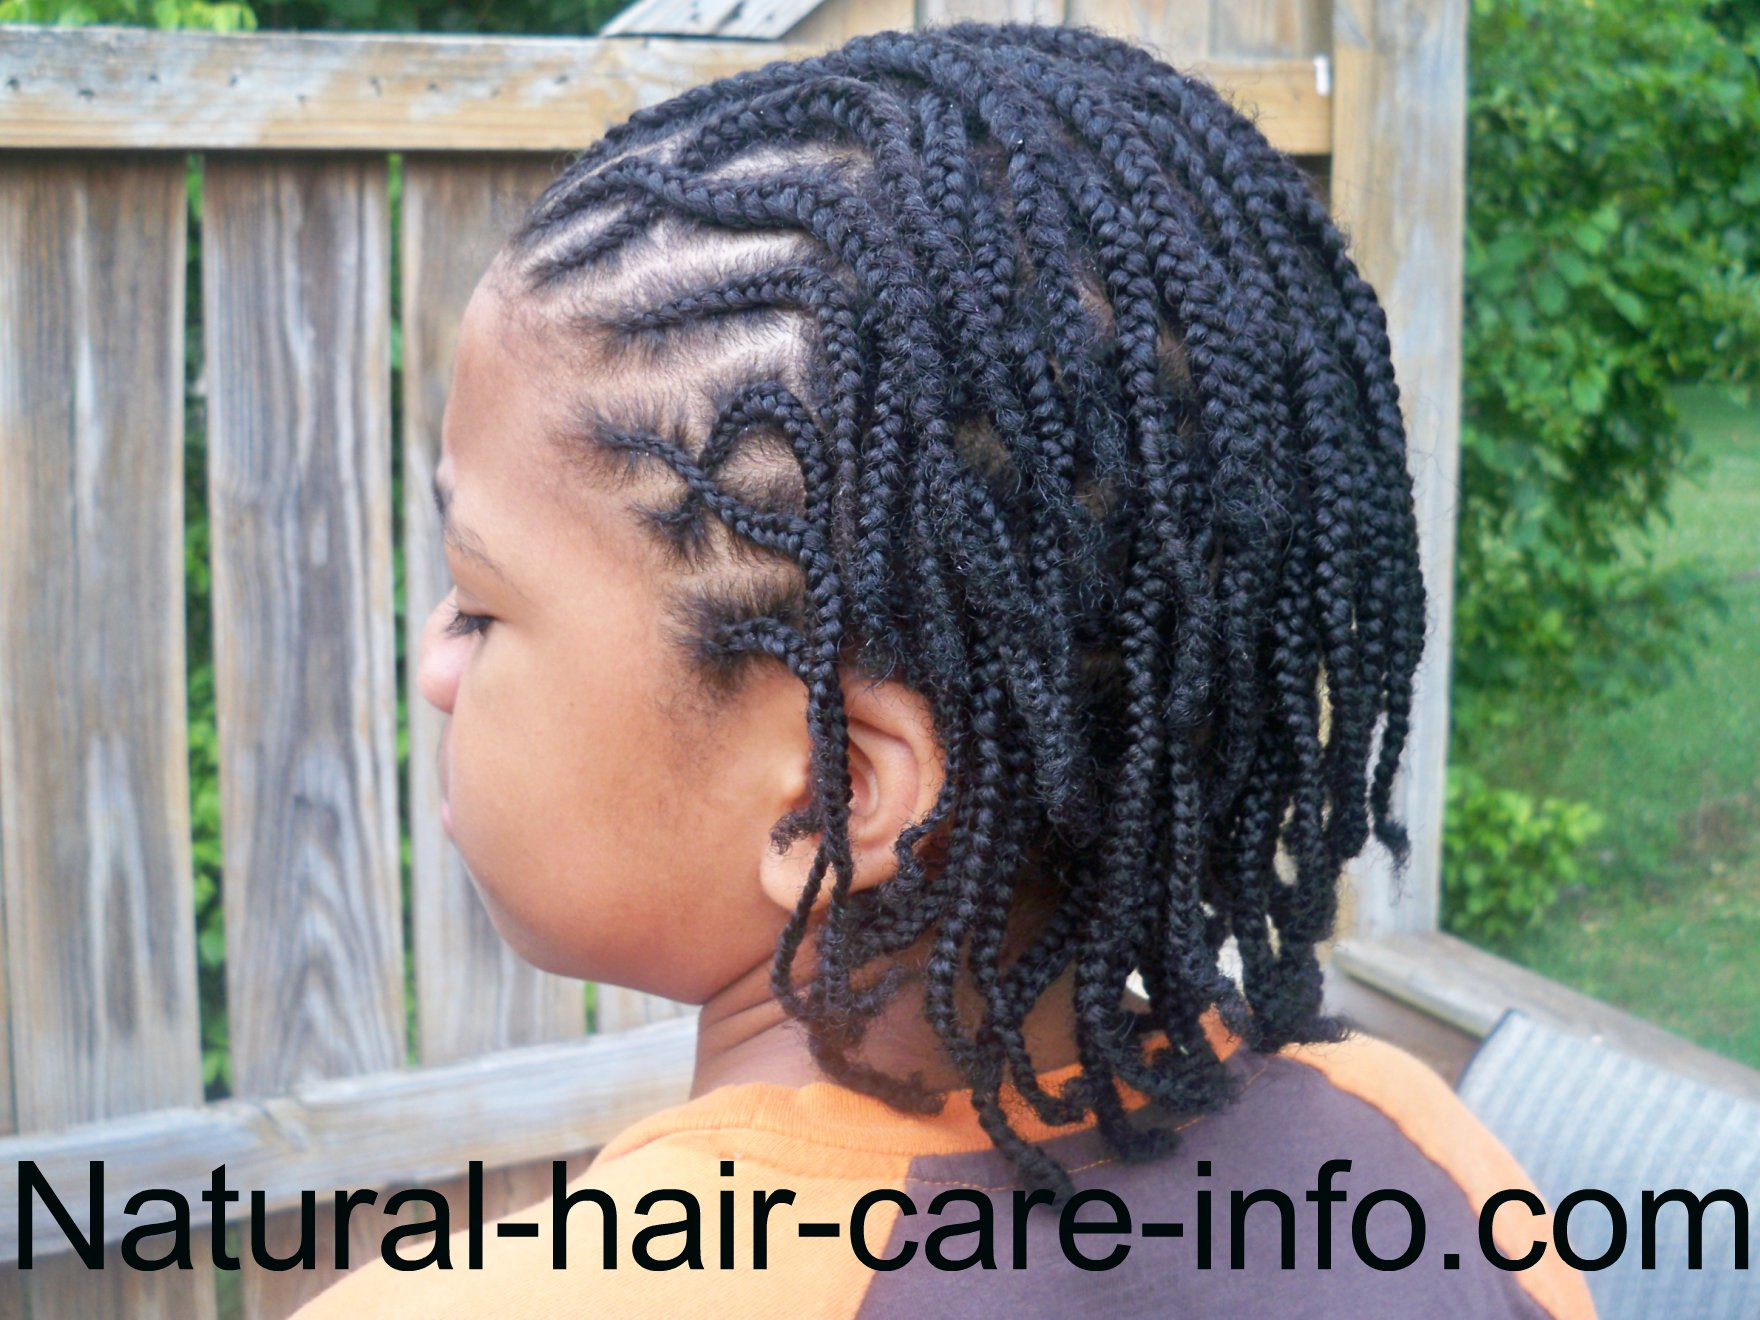 Brilliant Braid Hairstyles For Men Complete List And Tutorials Short Hairstyles For Black Women Fulllsitofus